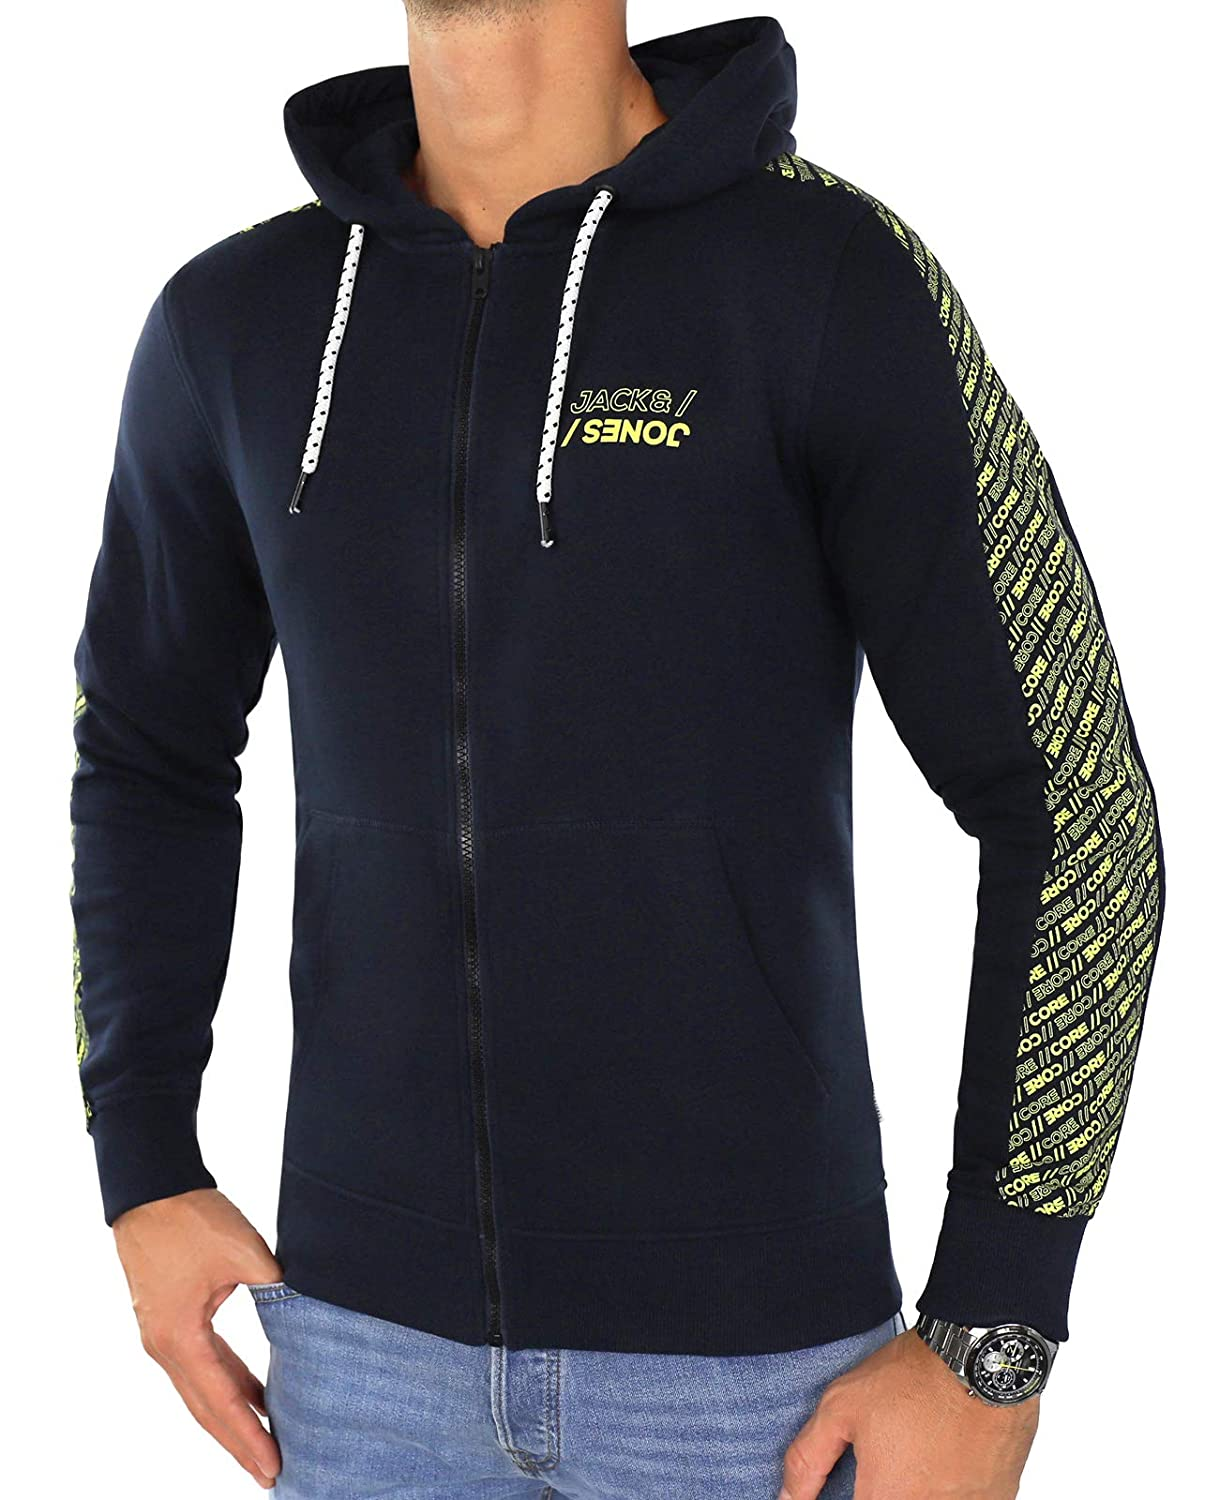 96699d65819591 Jack and Jones Storm Men s Sweatshirt  Jack Jones  Amazon.co.uk  Clothing